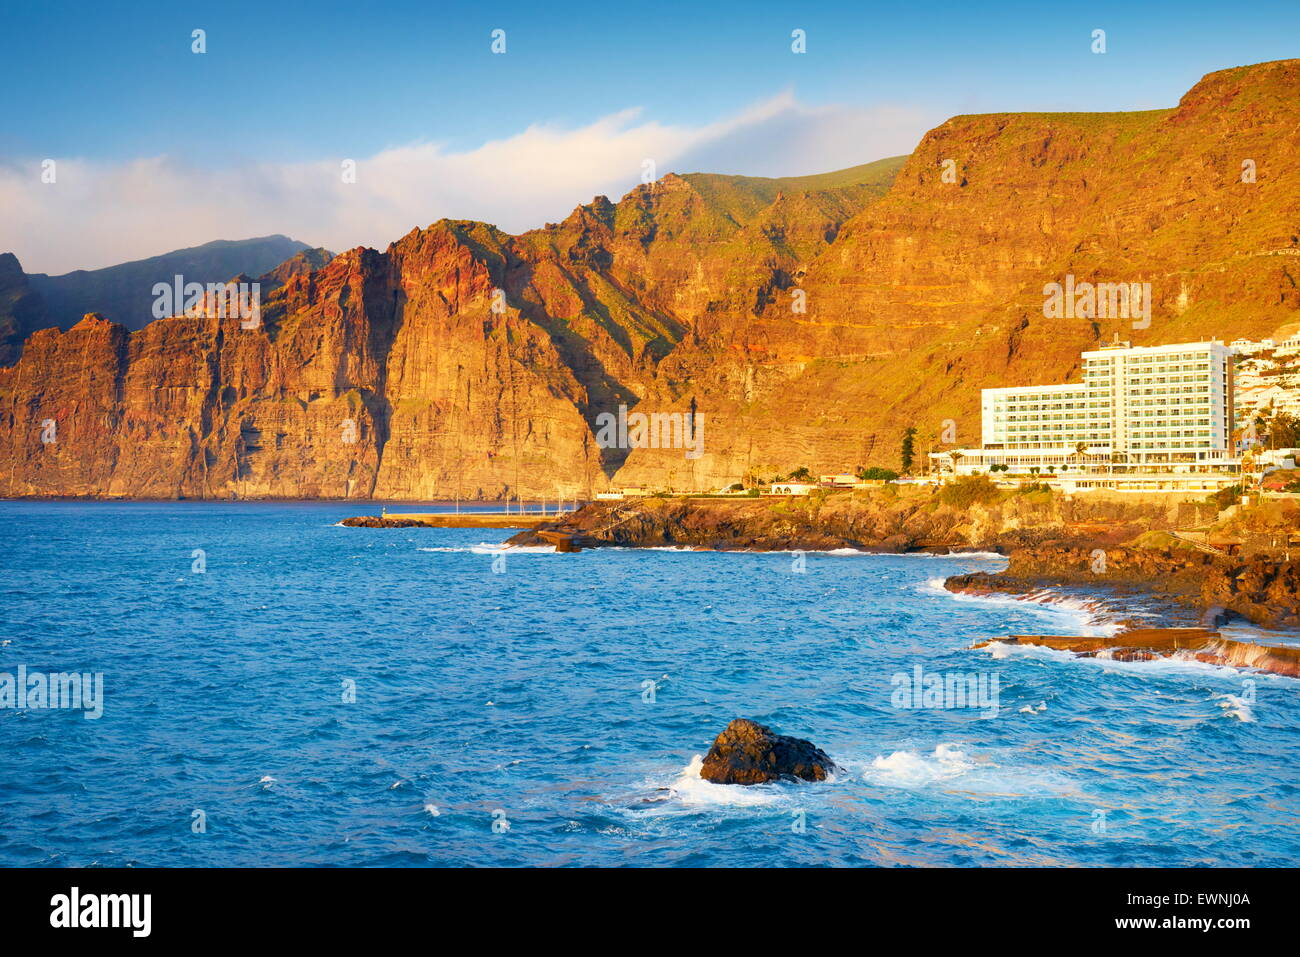 Tenerife, Los Gigantes Cliff, Canary Islands, Spain - Stock Image